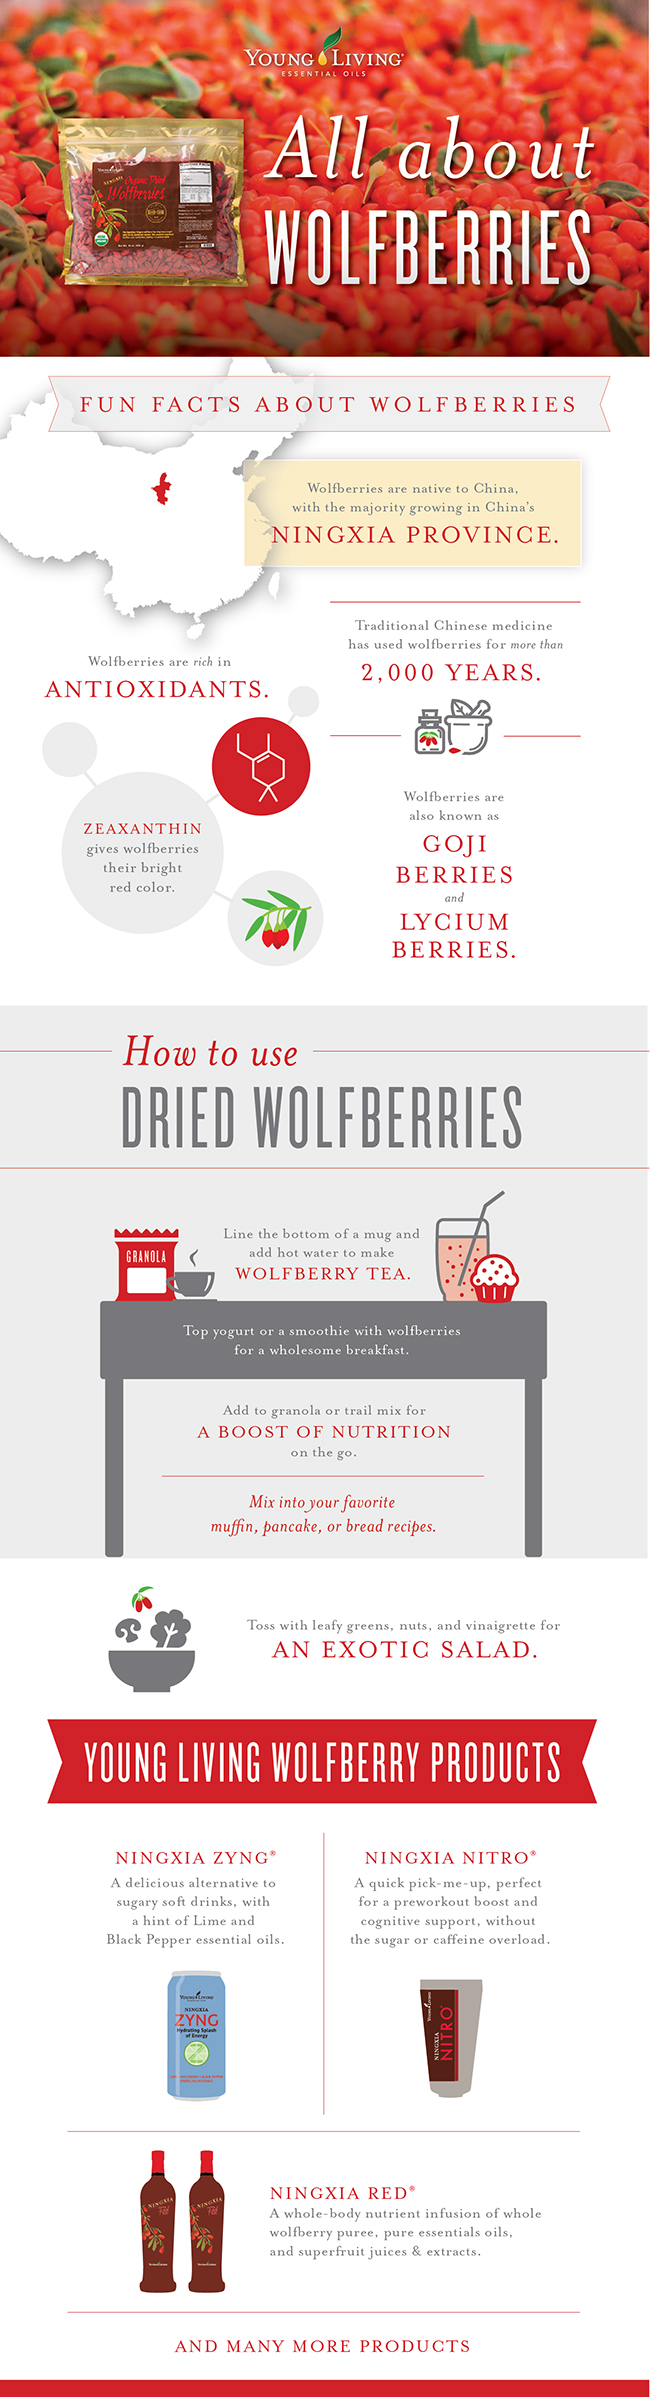 Fun facts about wolfberries infographic